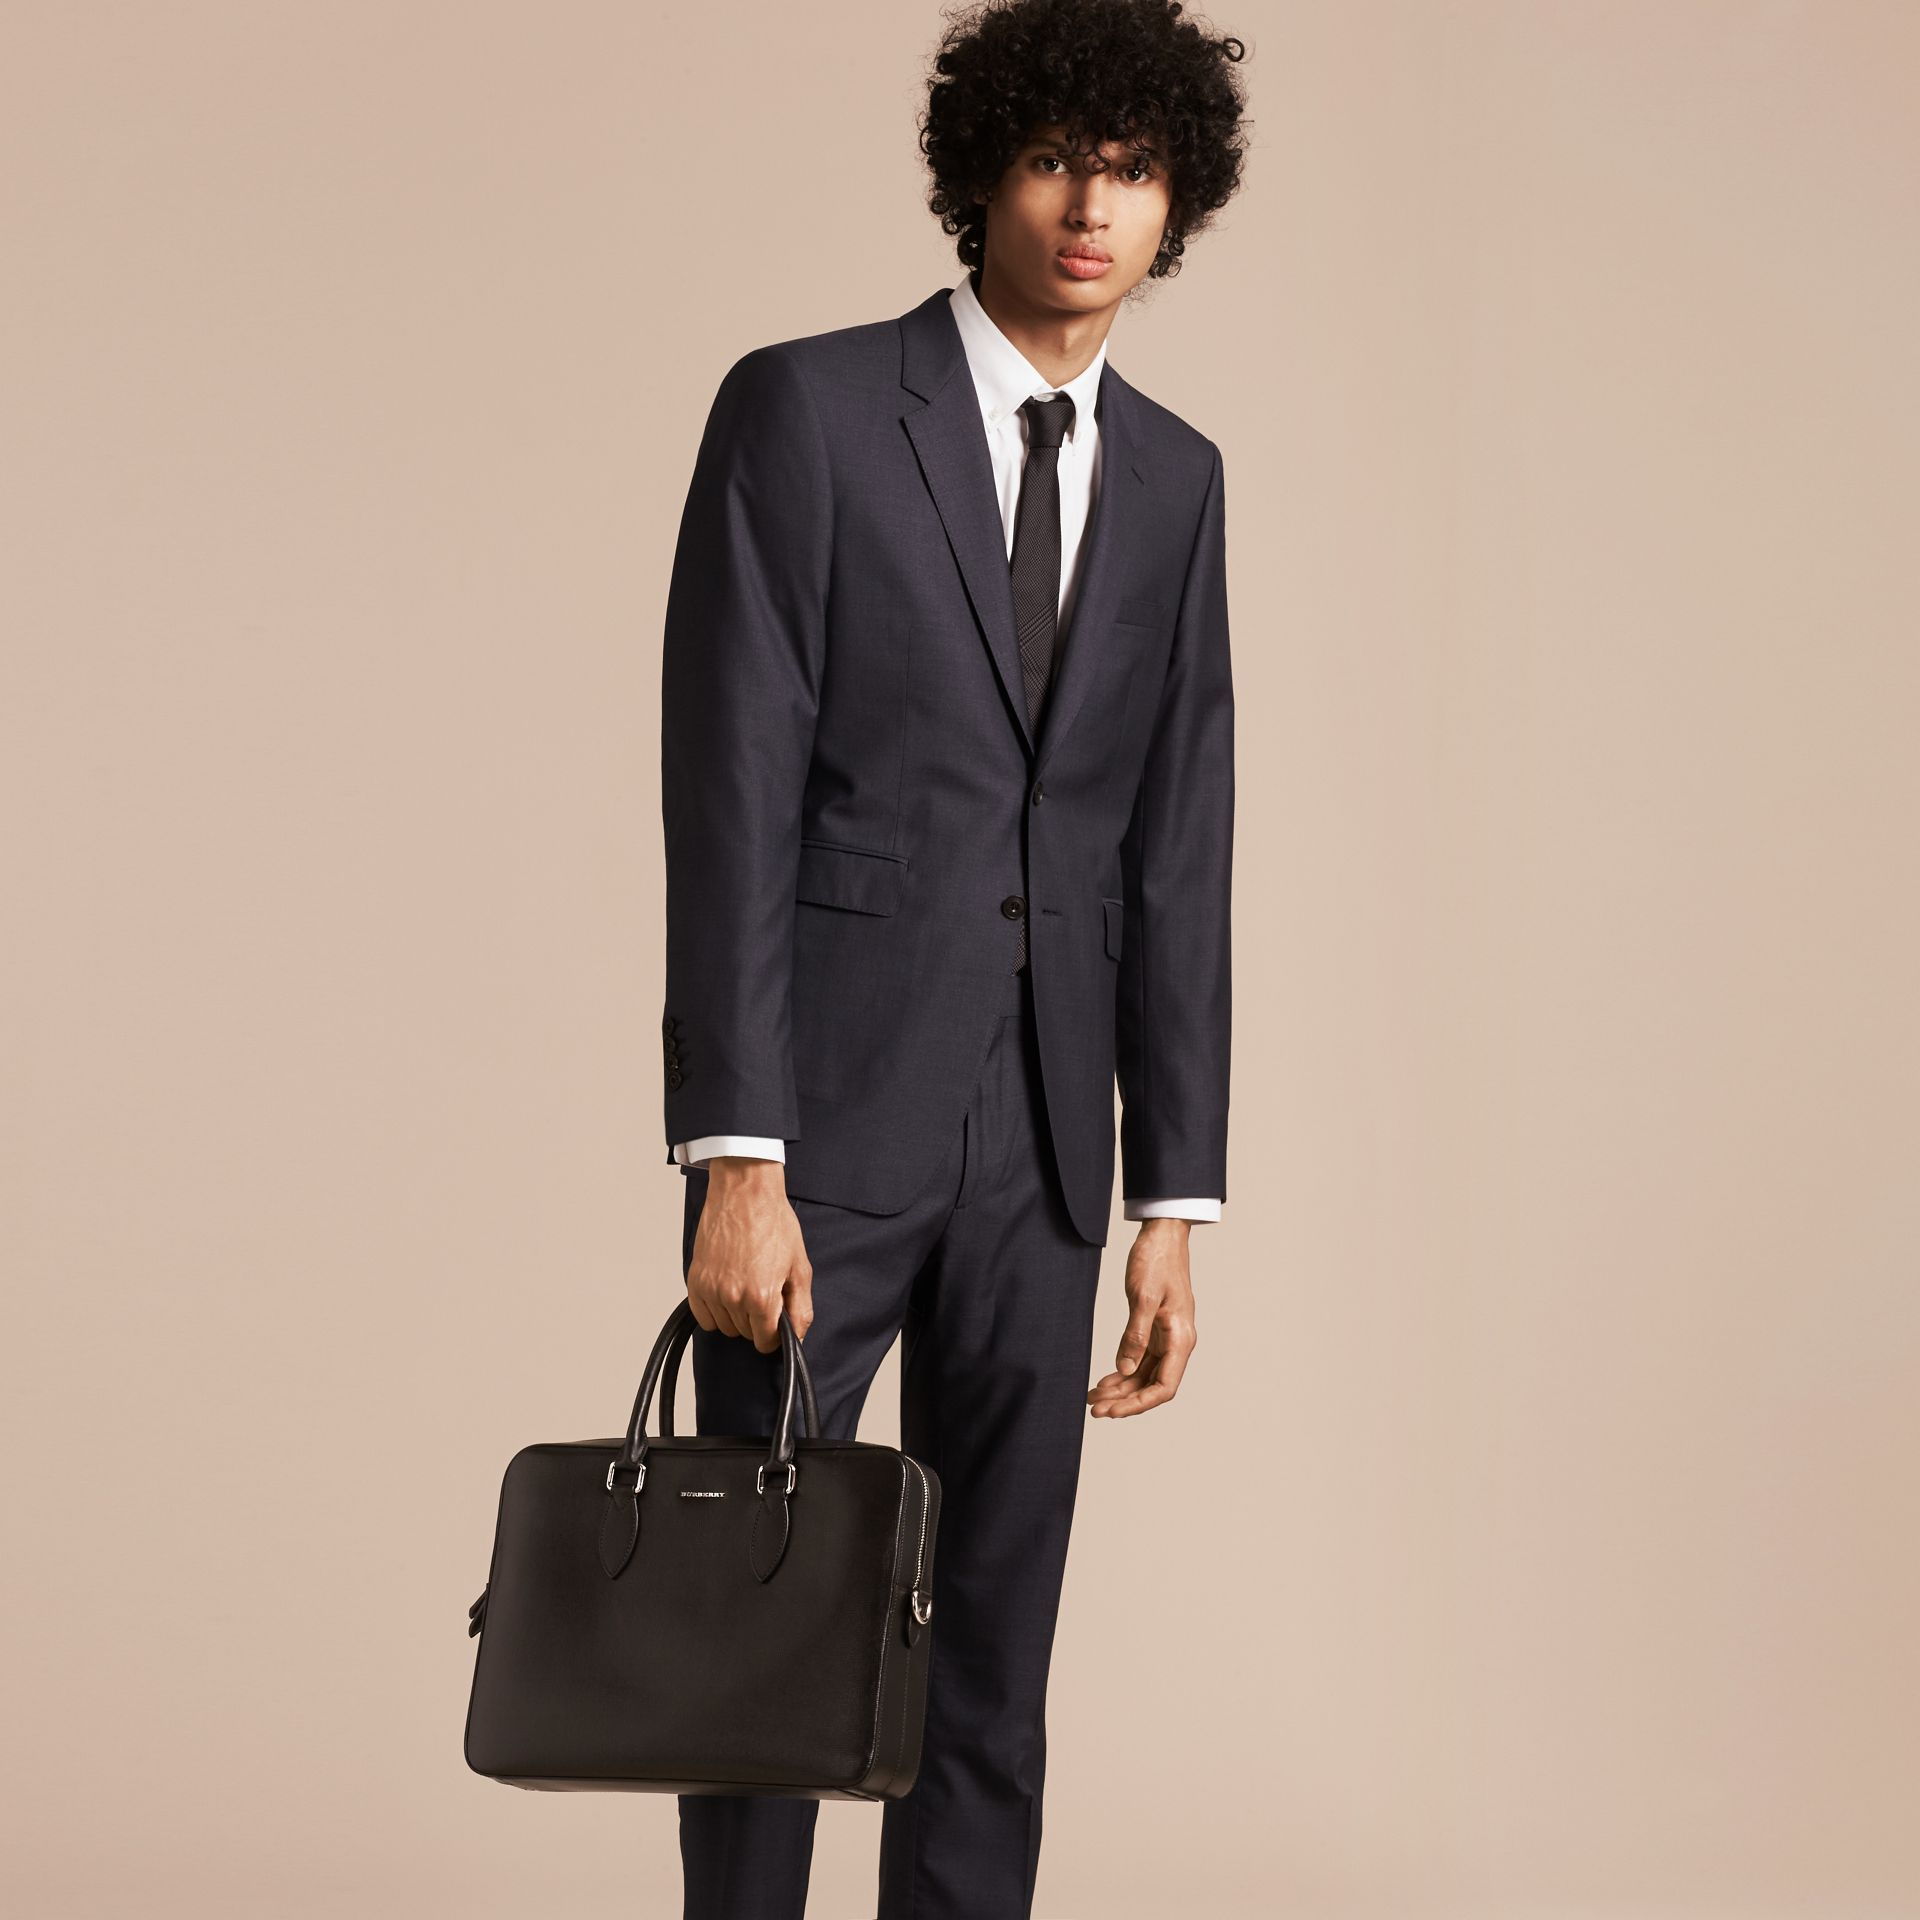 London Leather Briefcase in Black - Men | Burberry Canada - gallery image 3